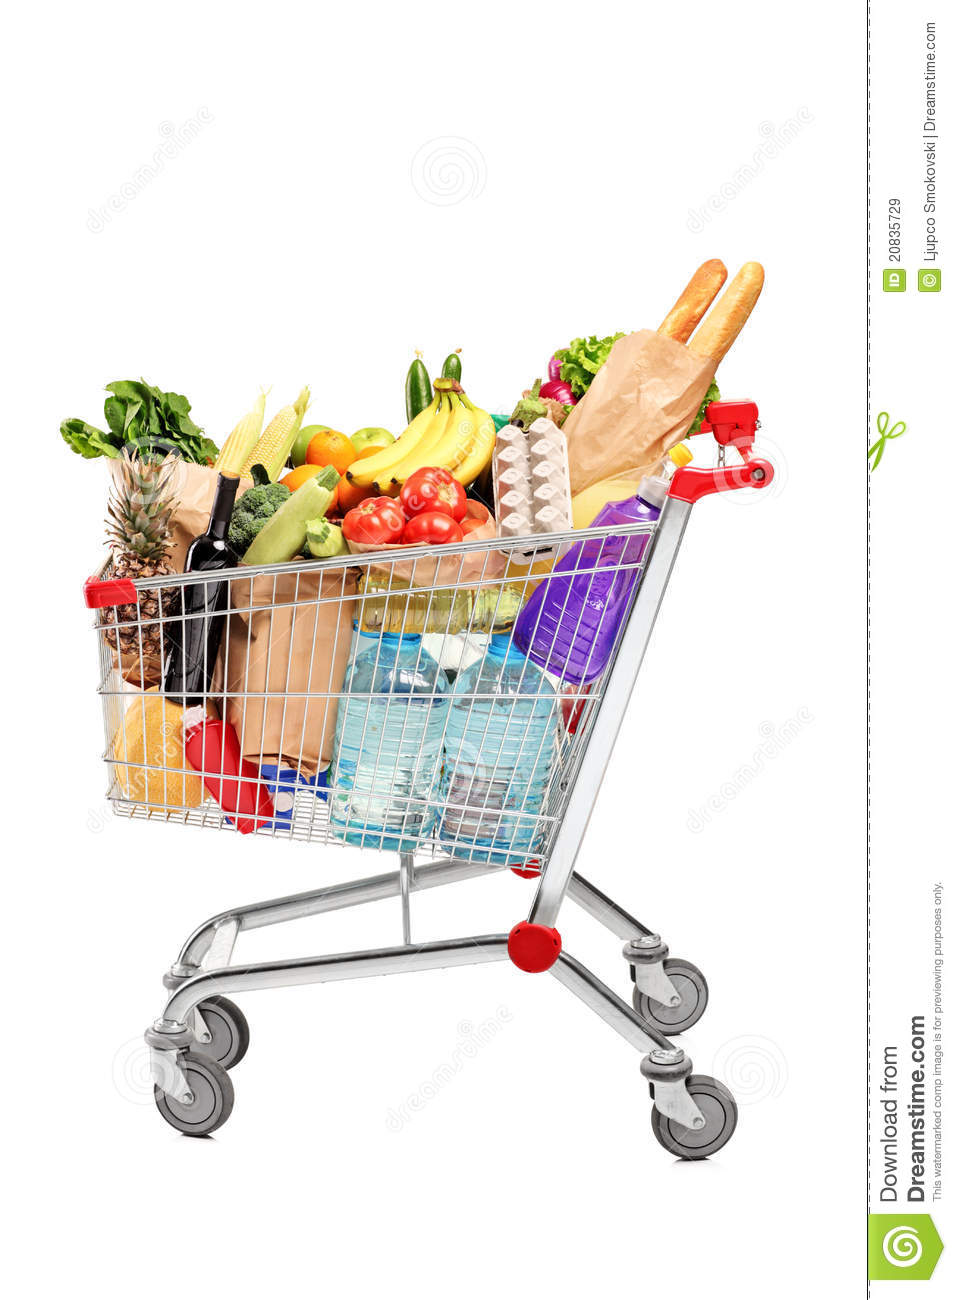 Shopping Cart Full With Groceries Royalty Free Stock Images - Image ...